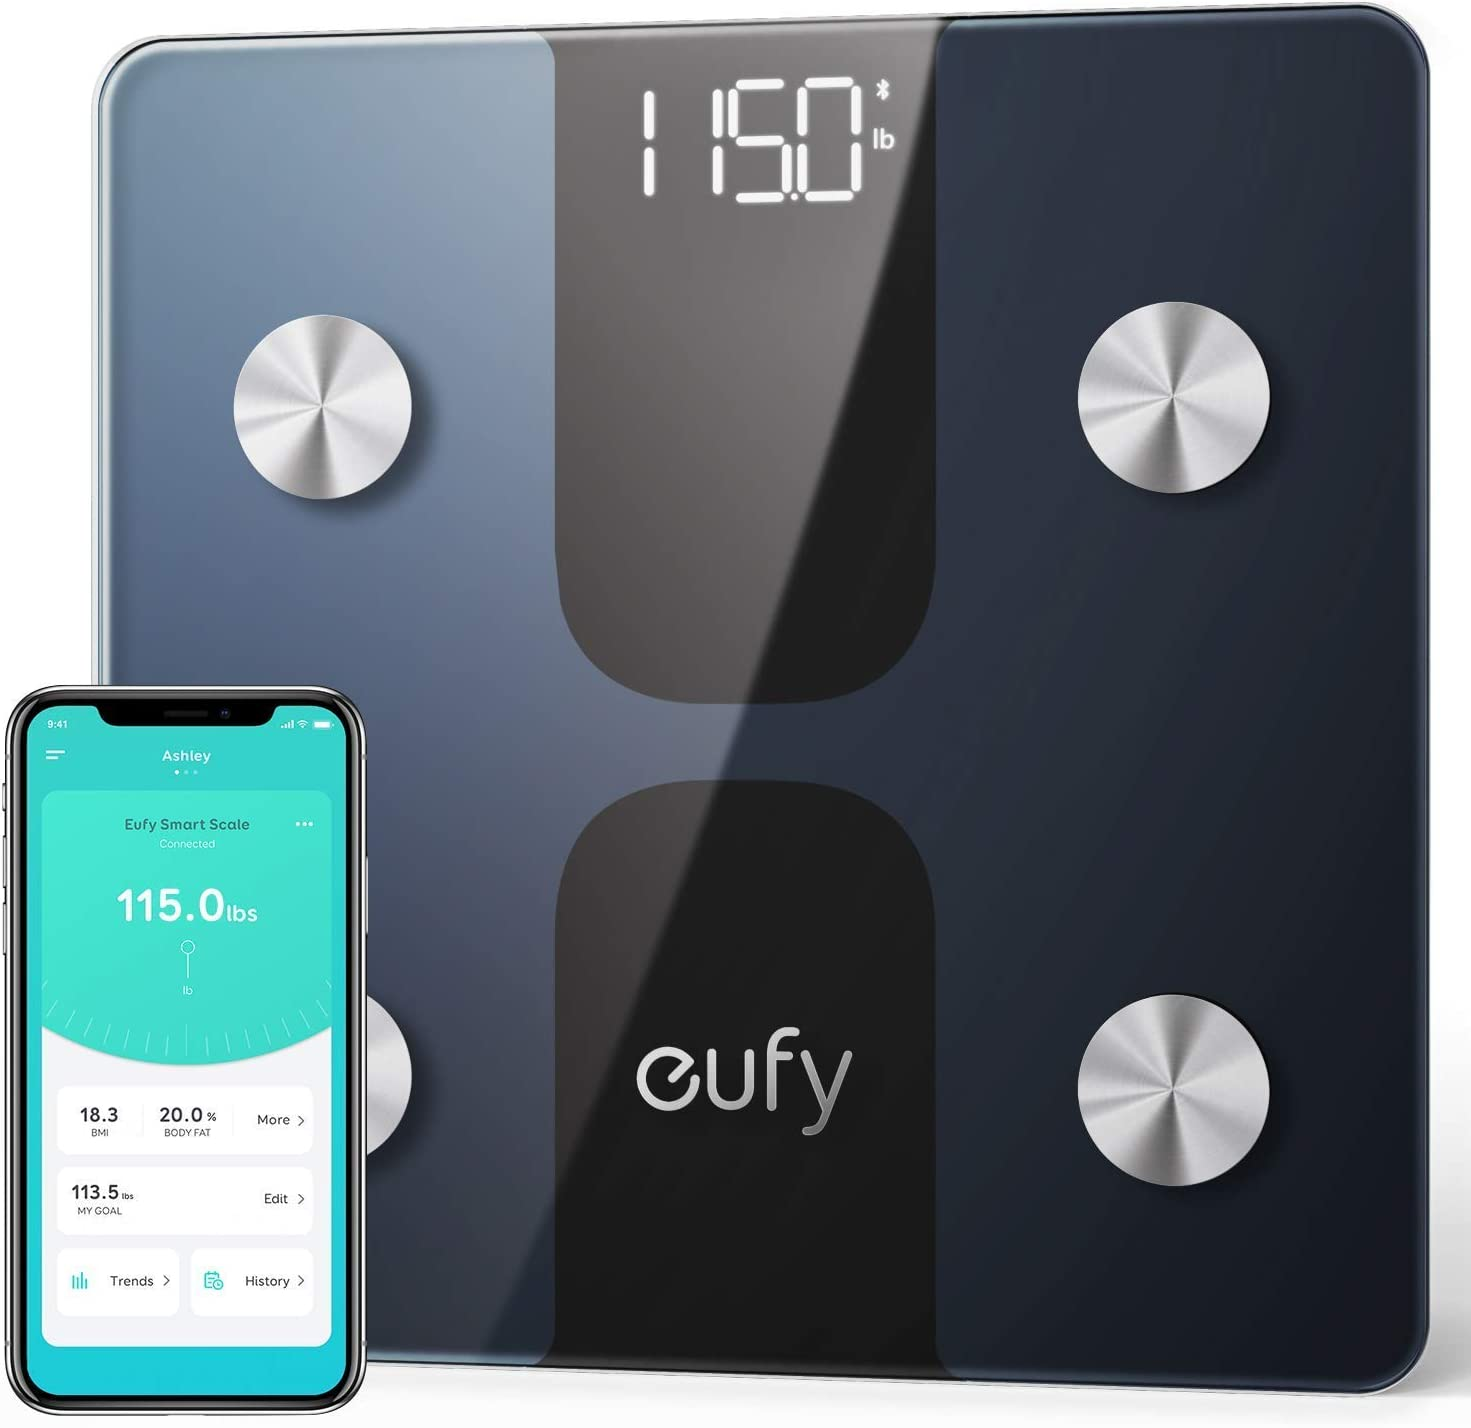 eufy Smart Scale C1 with Bluetooth, Body Fat Scale, Wireless Digital Bathroom Scale, 12 Measurements, Weight/Body Fat/BMI, Fitness Body Composition Analysis, Black/White, lbs/kg